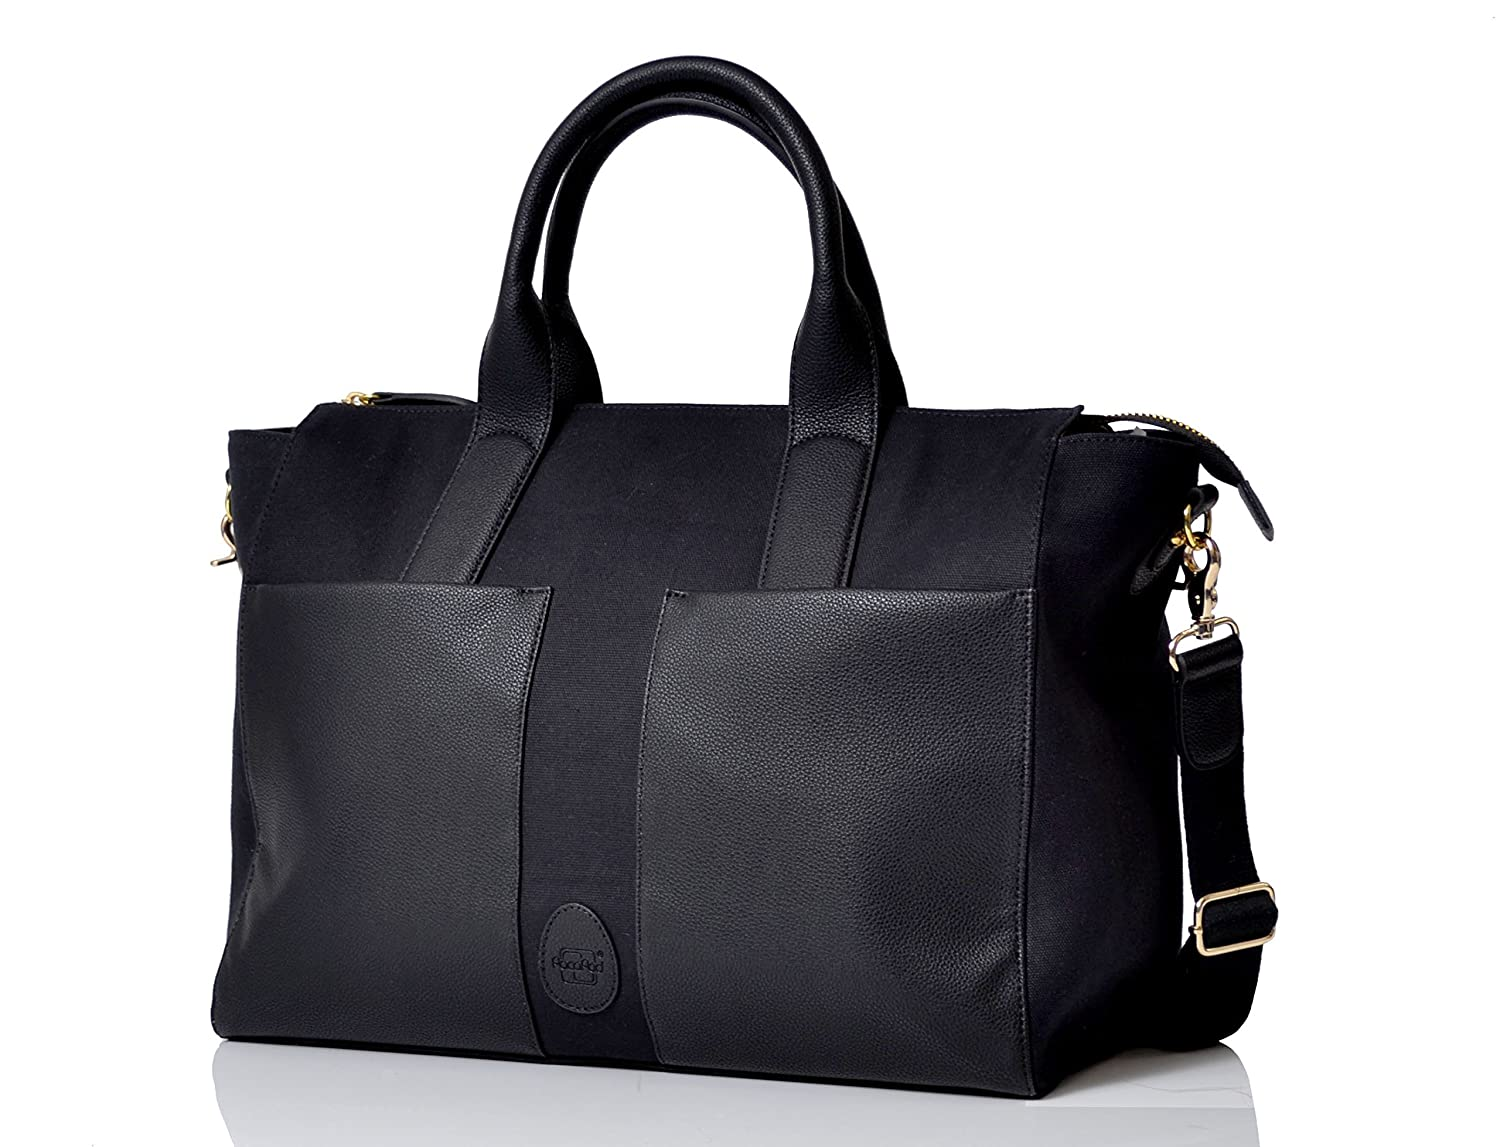 4e3178798452 PacaPod Croyde Black Designer Baby Changing Bag - Luxury Canvas and Faux  Leather Tote 4 in 1 Organising System  Amazon.co.uk  Baby